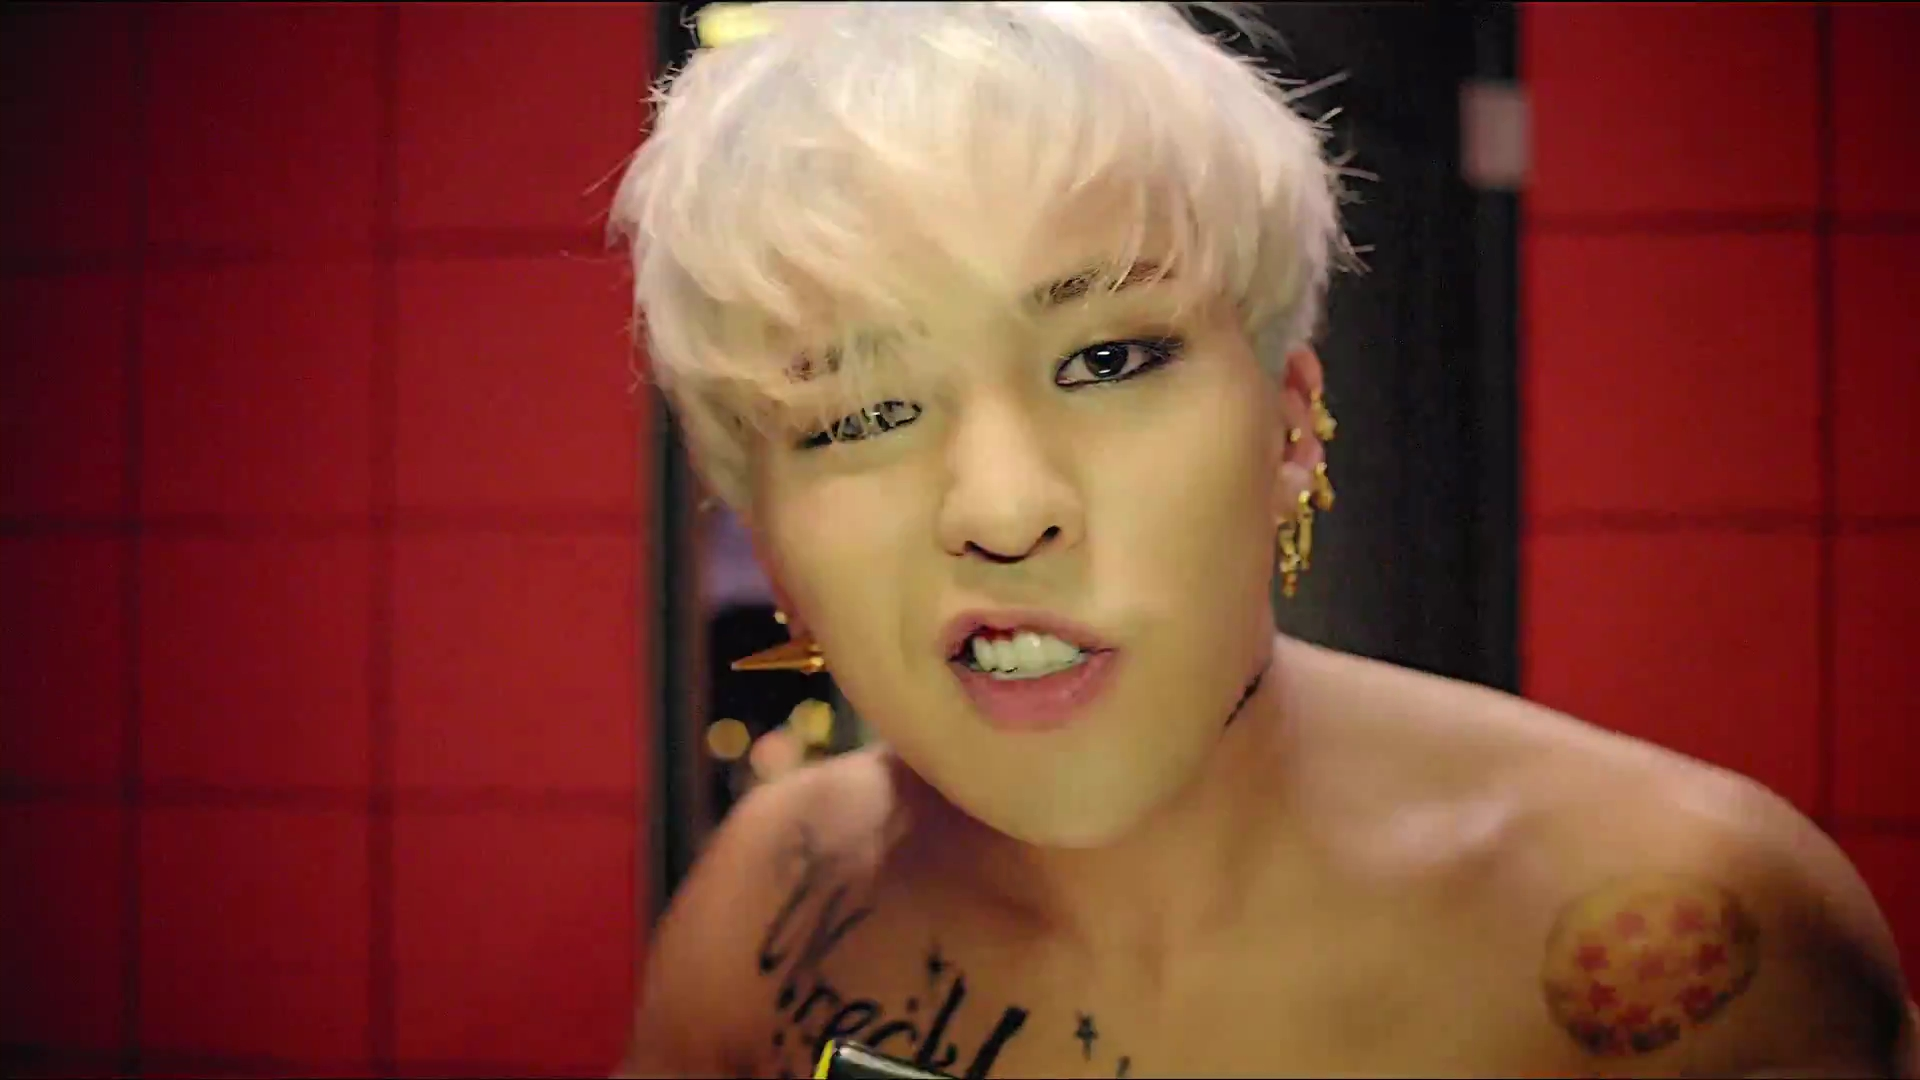 G Dragon 2013 Cute G-Dragon Sweetly Stare...